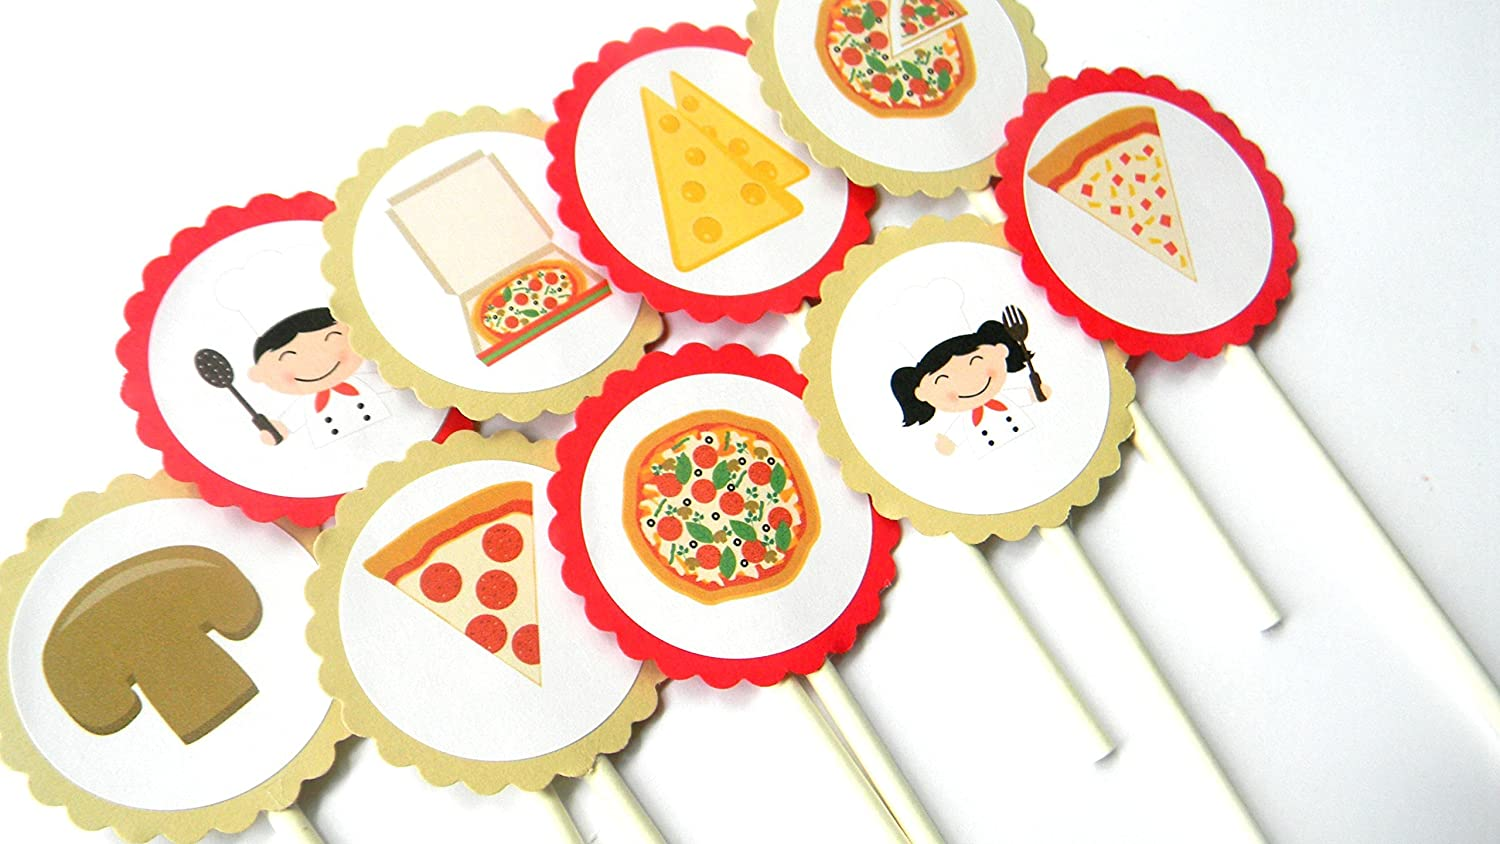 Pizza Cupcake Sacramento Mall Toppers - Max 47% OFF Set of 12